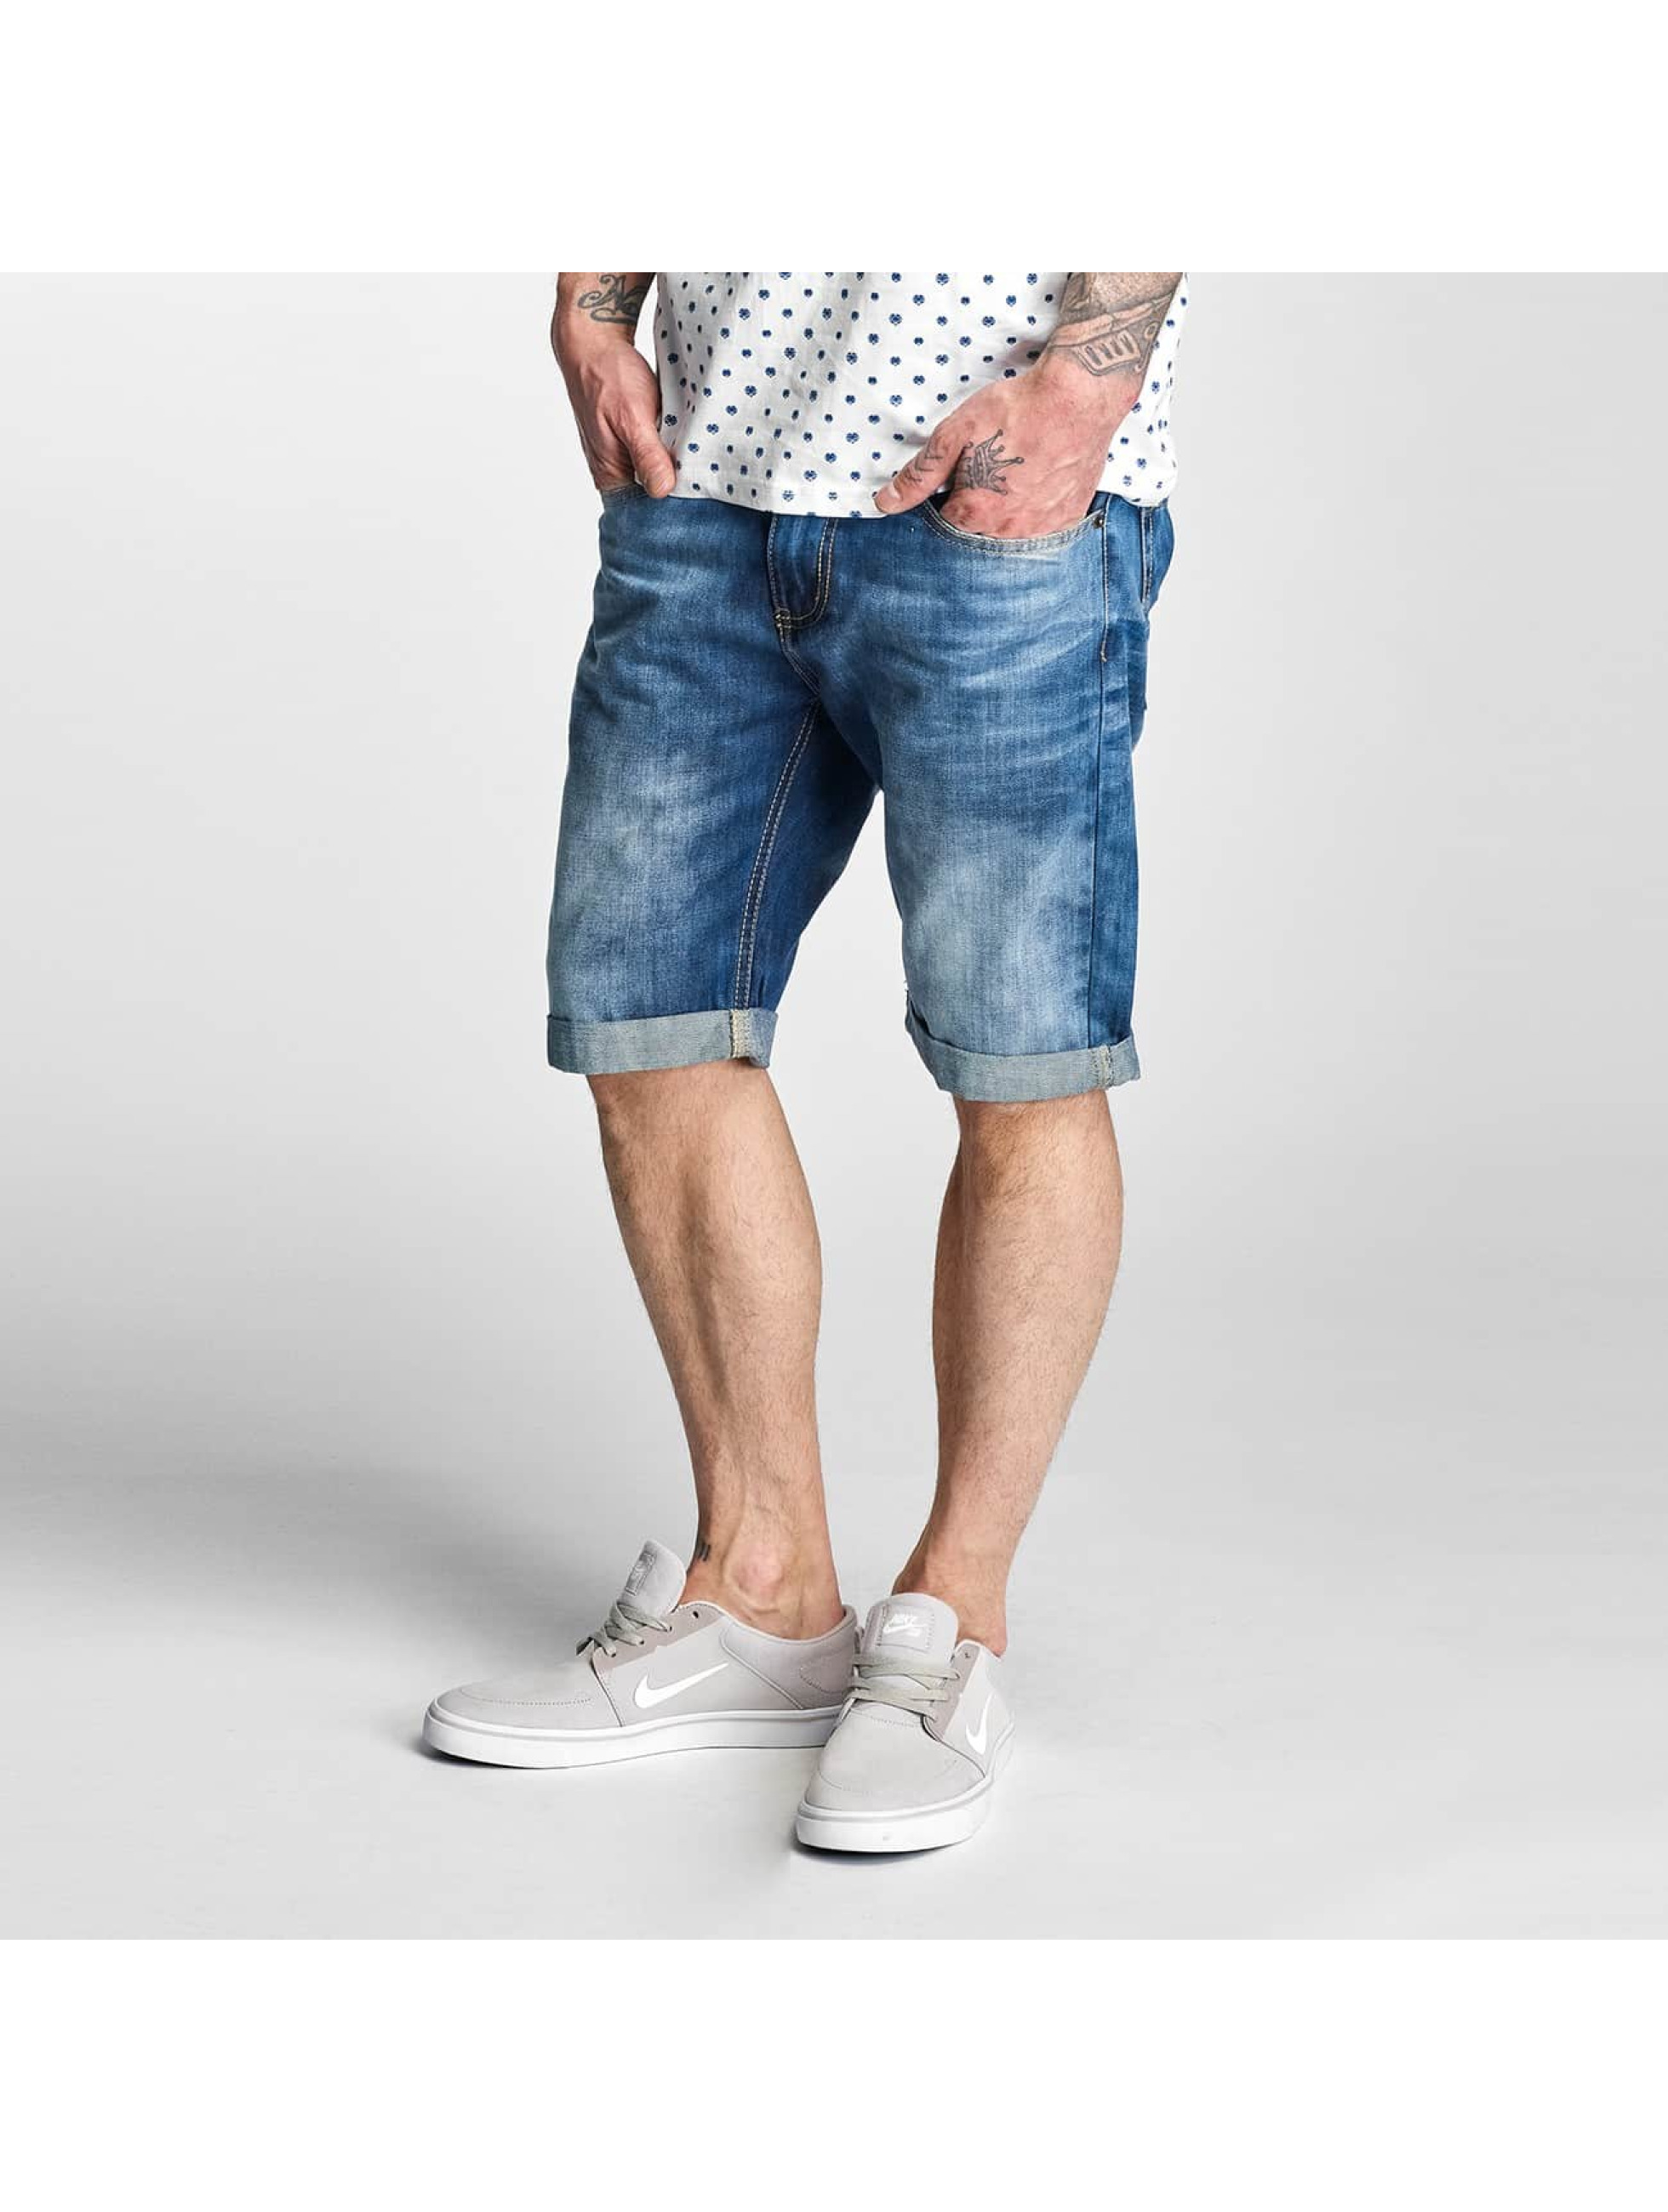 Rocawear / Short Relax Fit in blue W 36